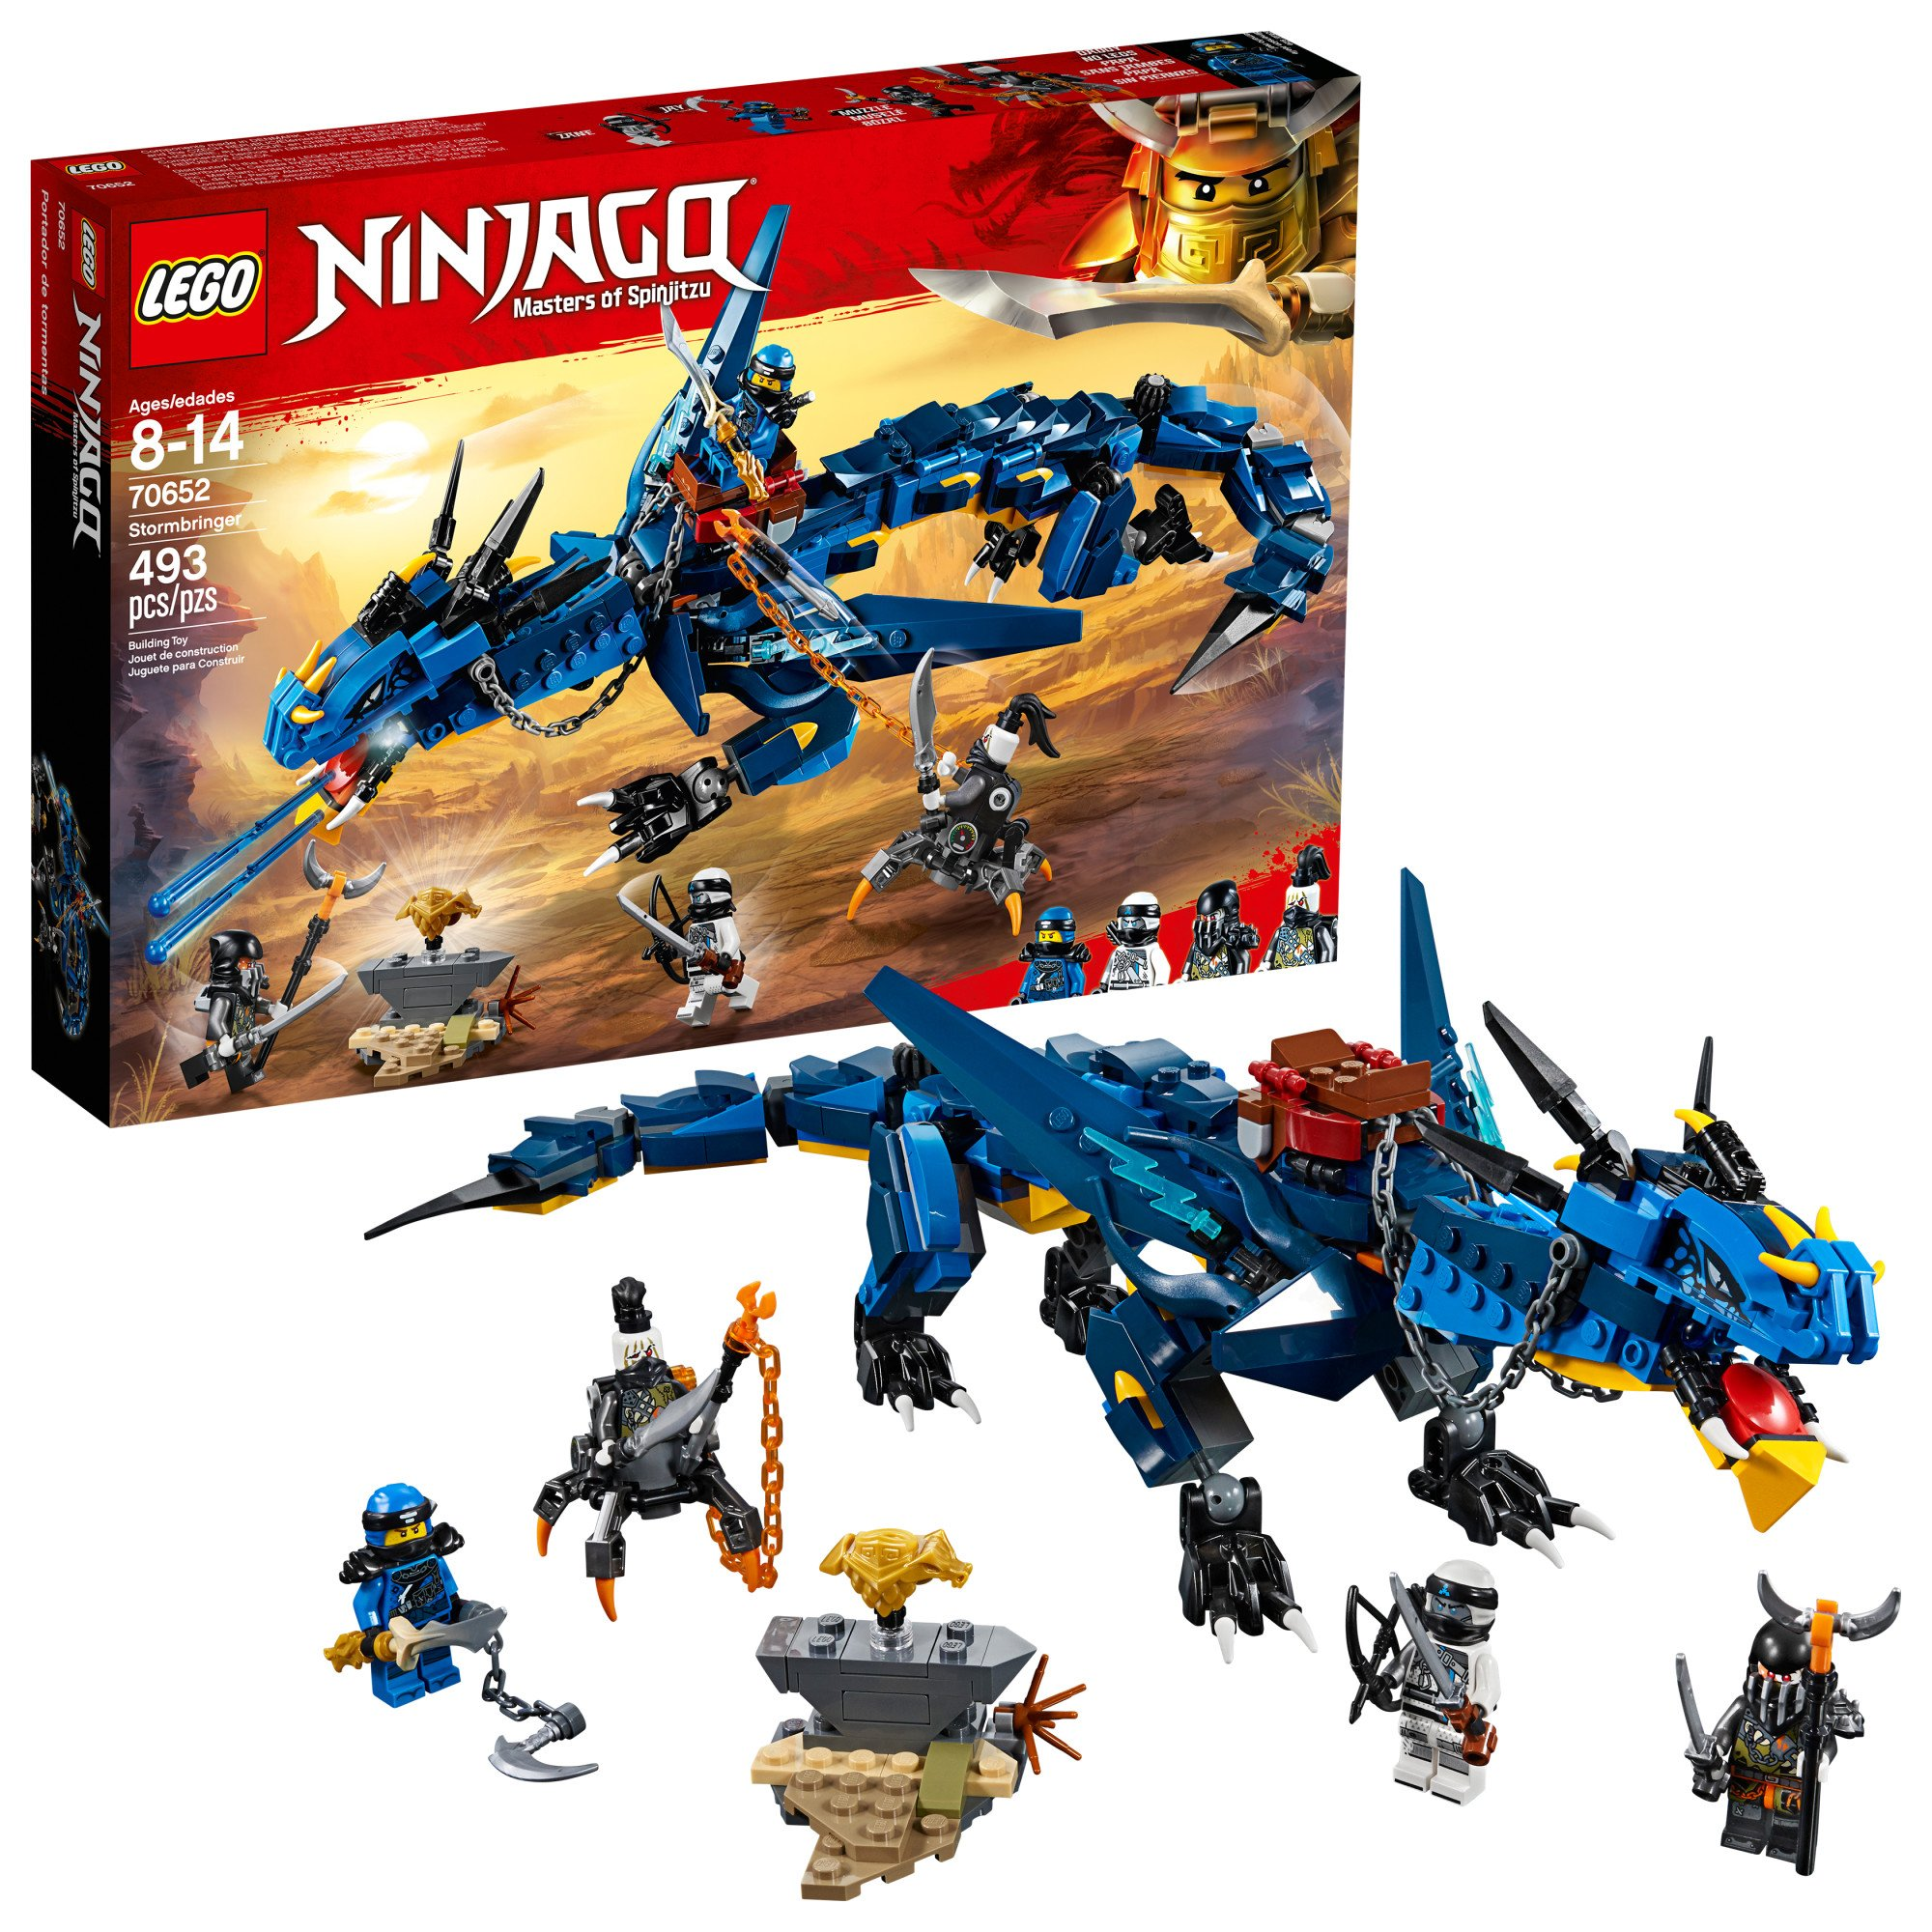 LEGO NINJAGO Masters of Spinjitzu: Stormbringer 70652 Ninja Toy Building Kit with Blue Dragon Model for Kids, Best Playset Gift for Boys (493 Piece) by LEGO